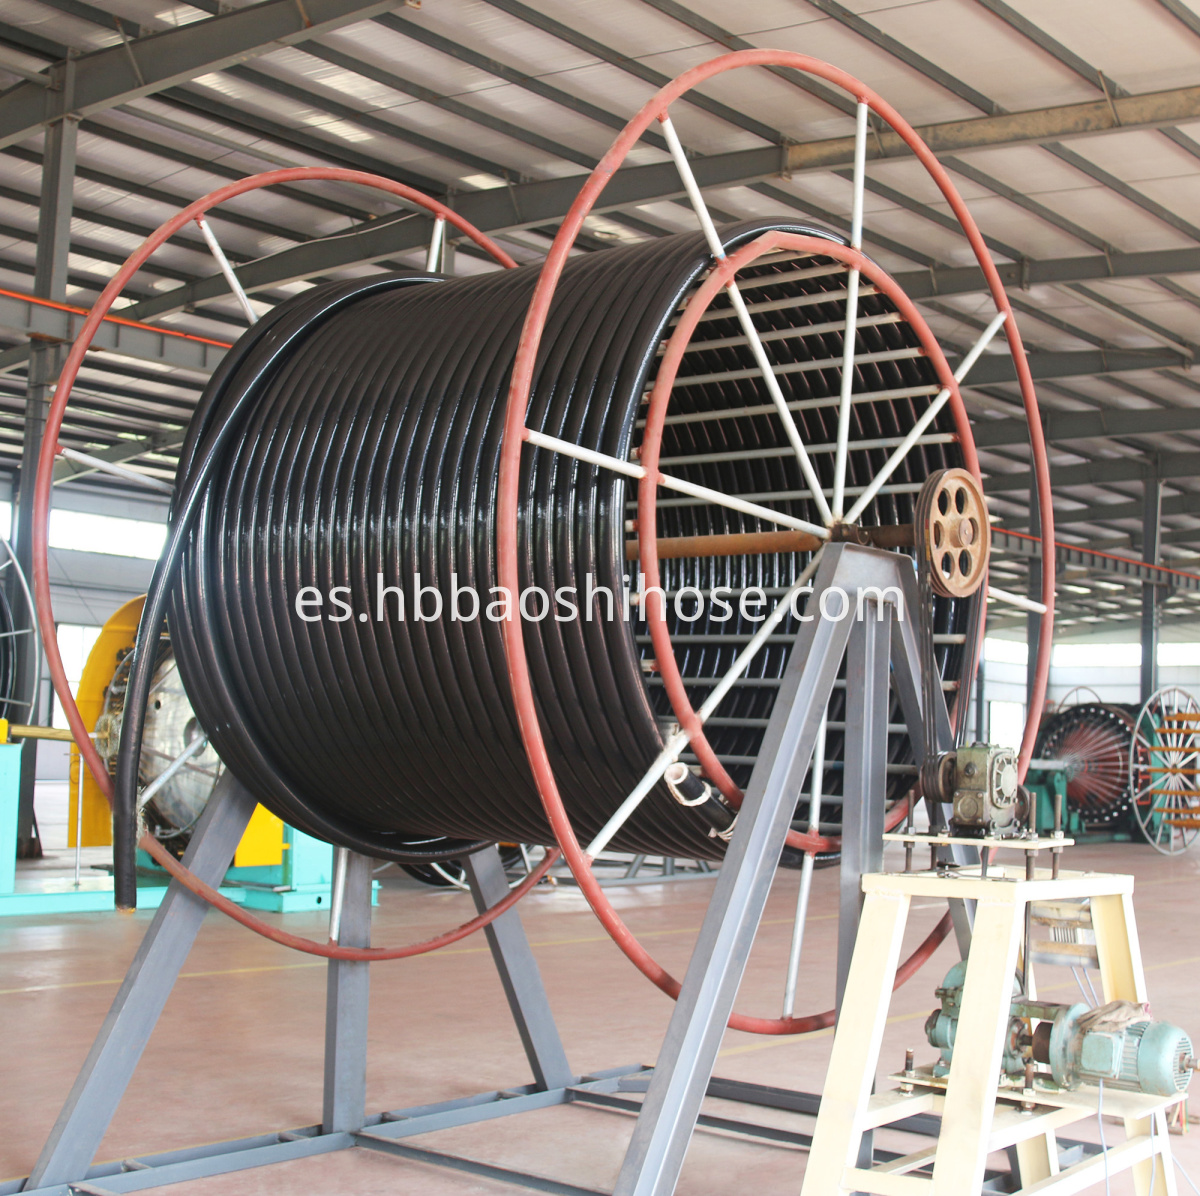 Flexible Composite Offshore High Pressure Pipe